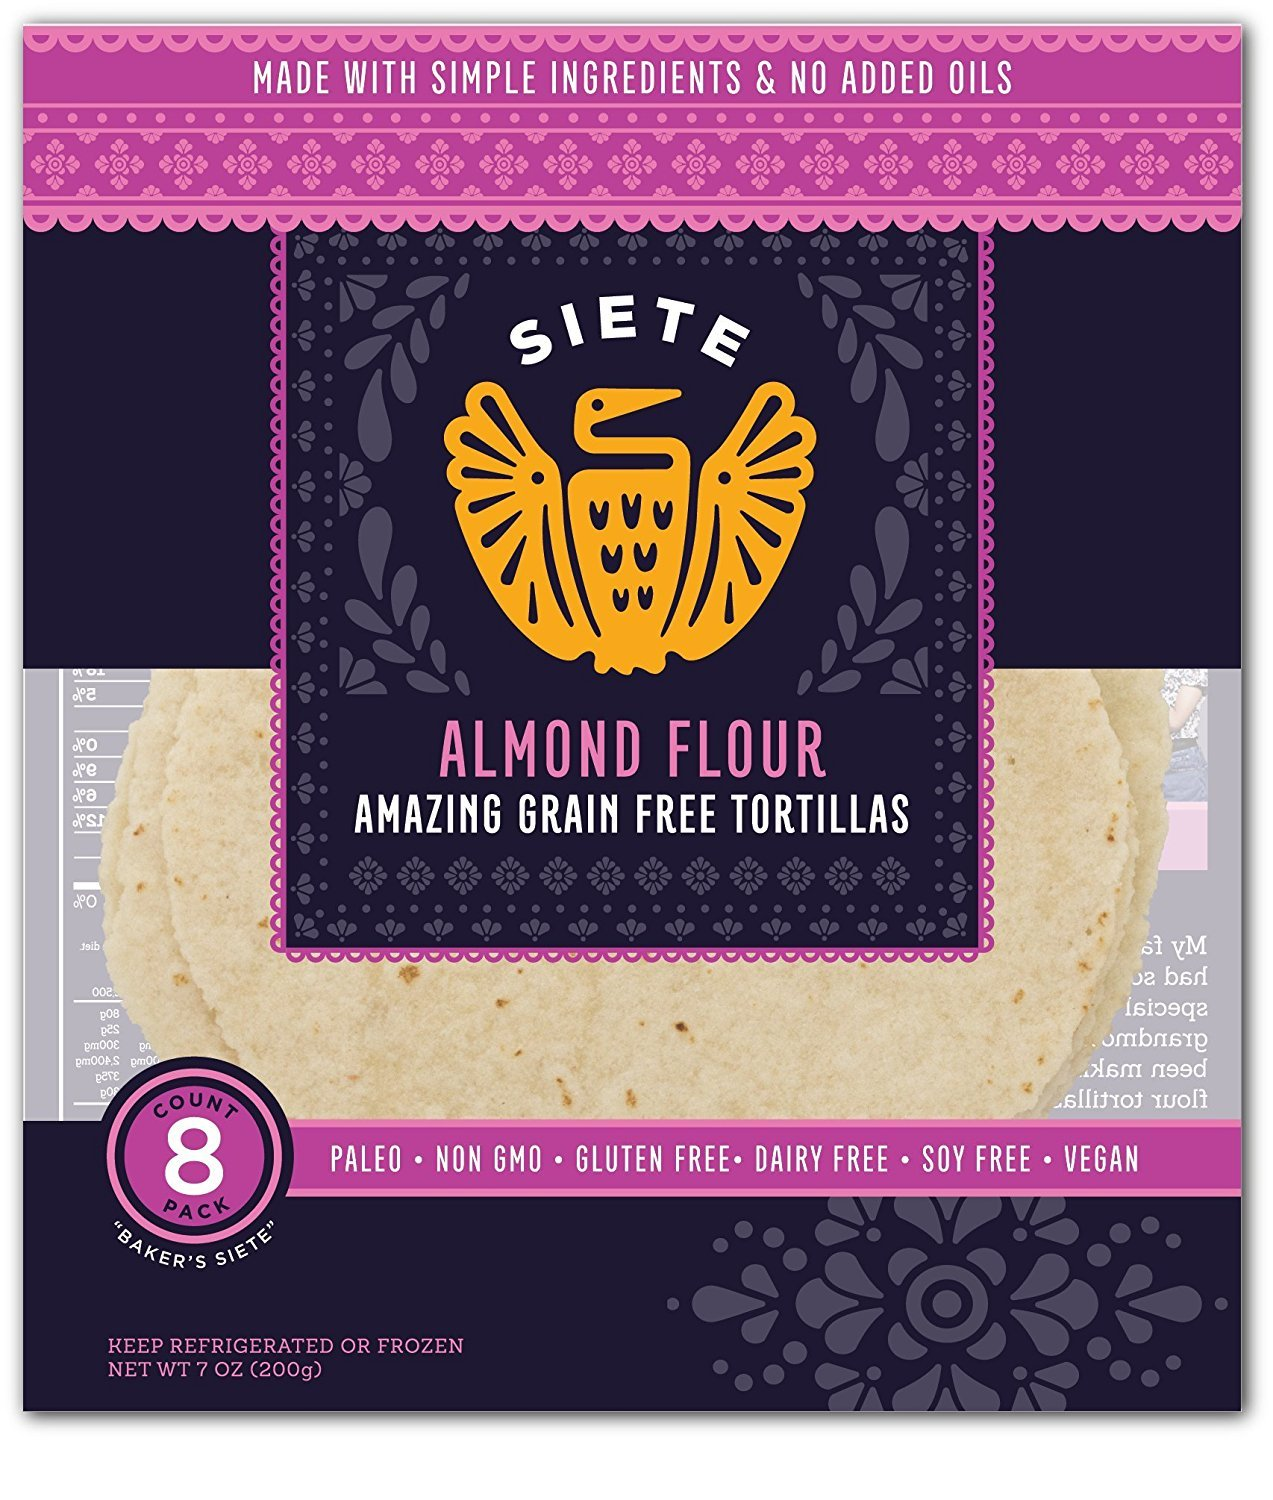 Siete Almond Flour Tortillas, Paleo Approved, 8 count (4 Pack)